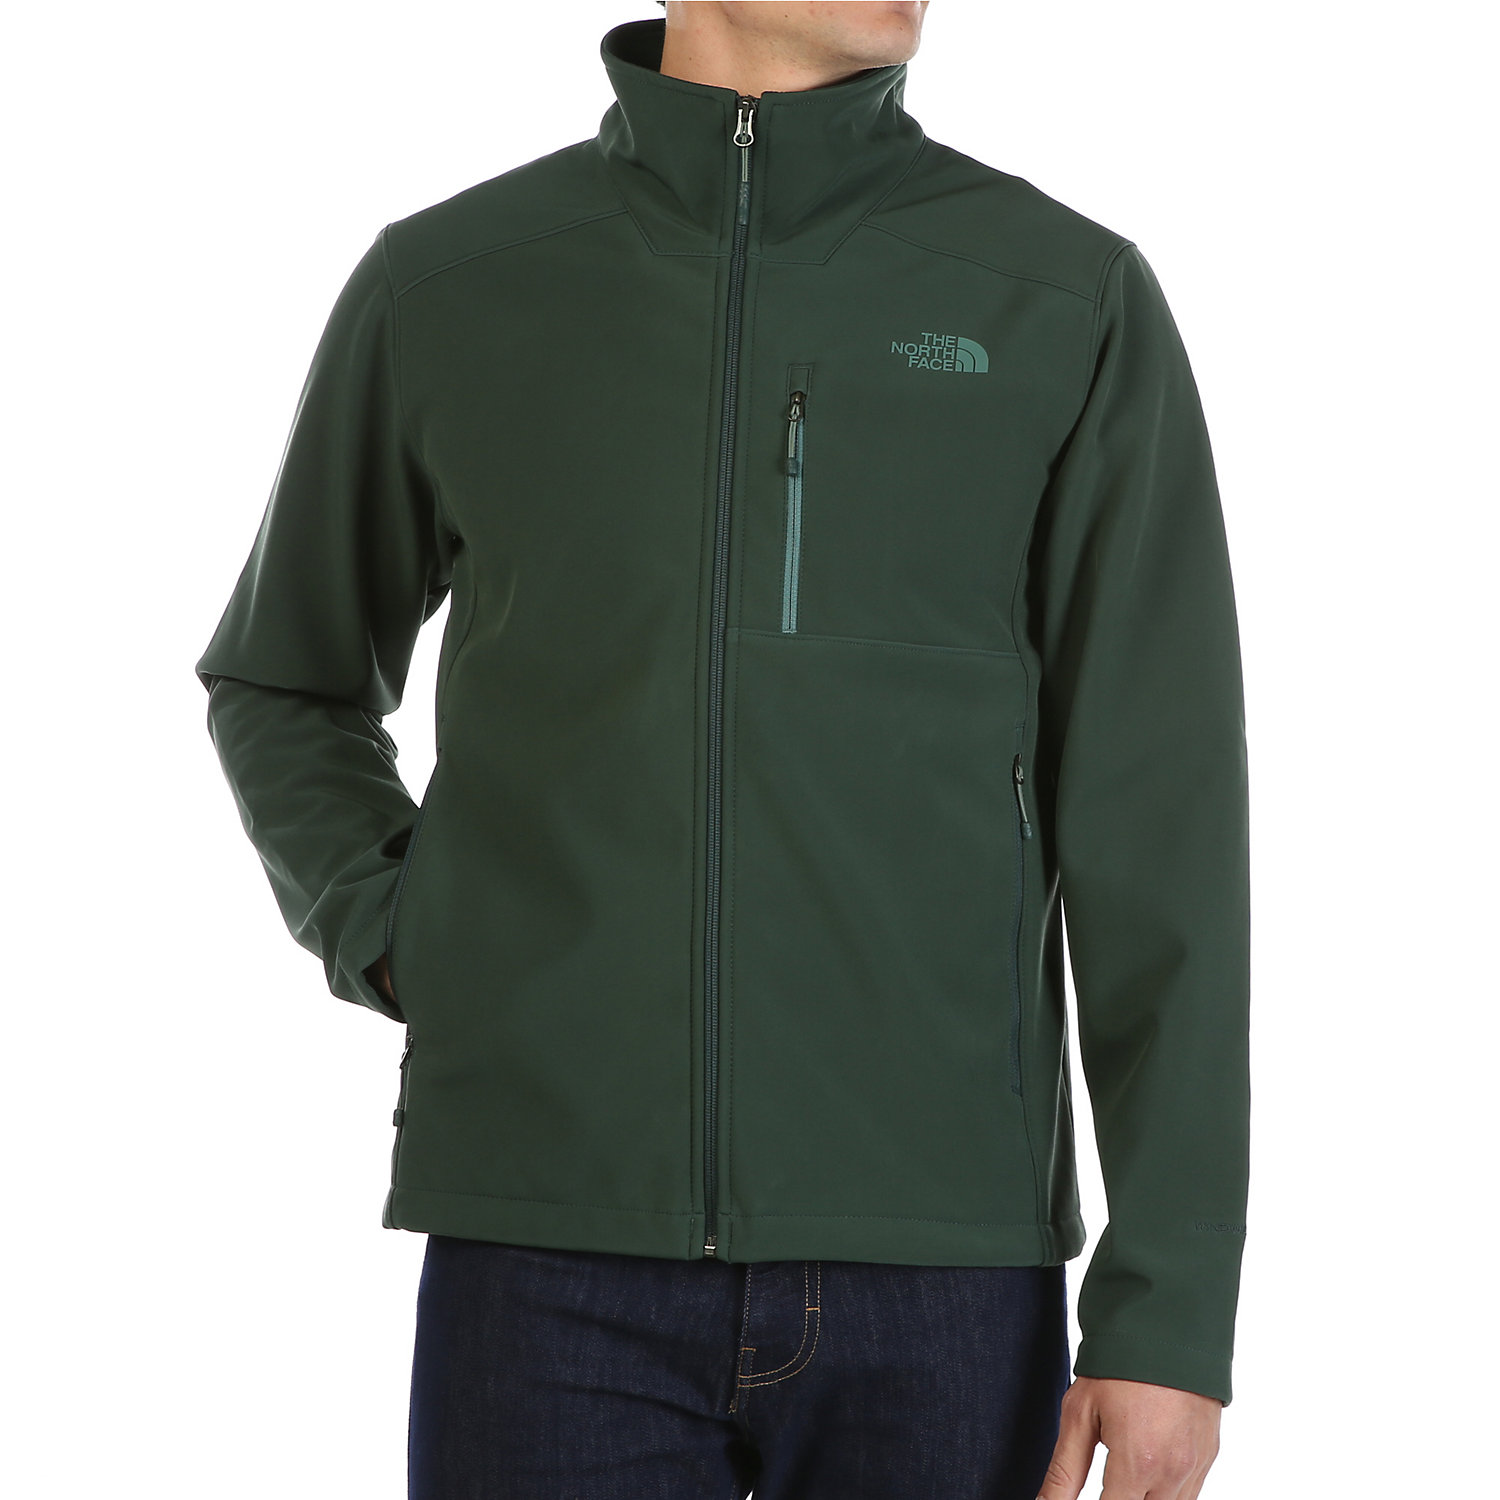 76752f183 The North Face Men's Apex Bionic 2 Jacket